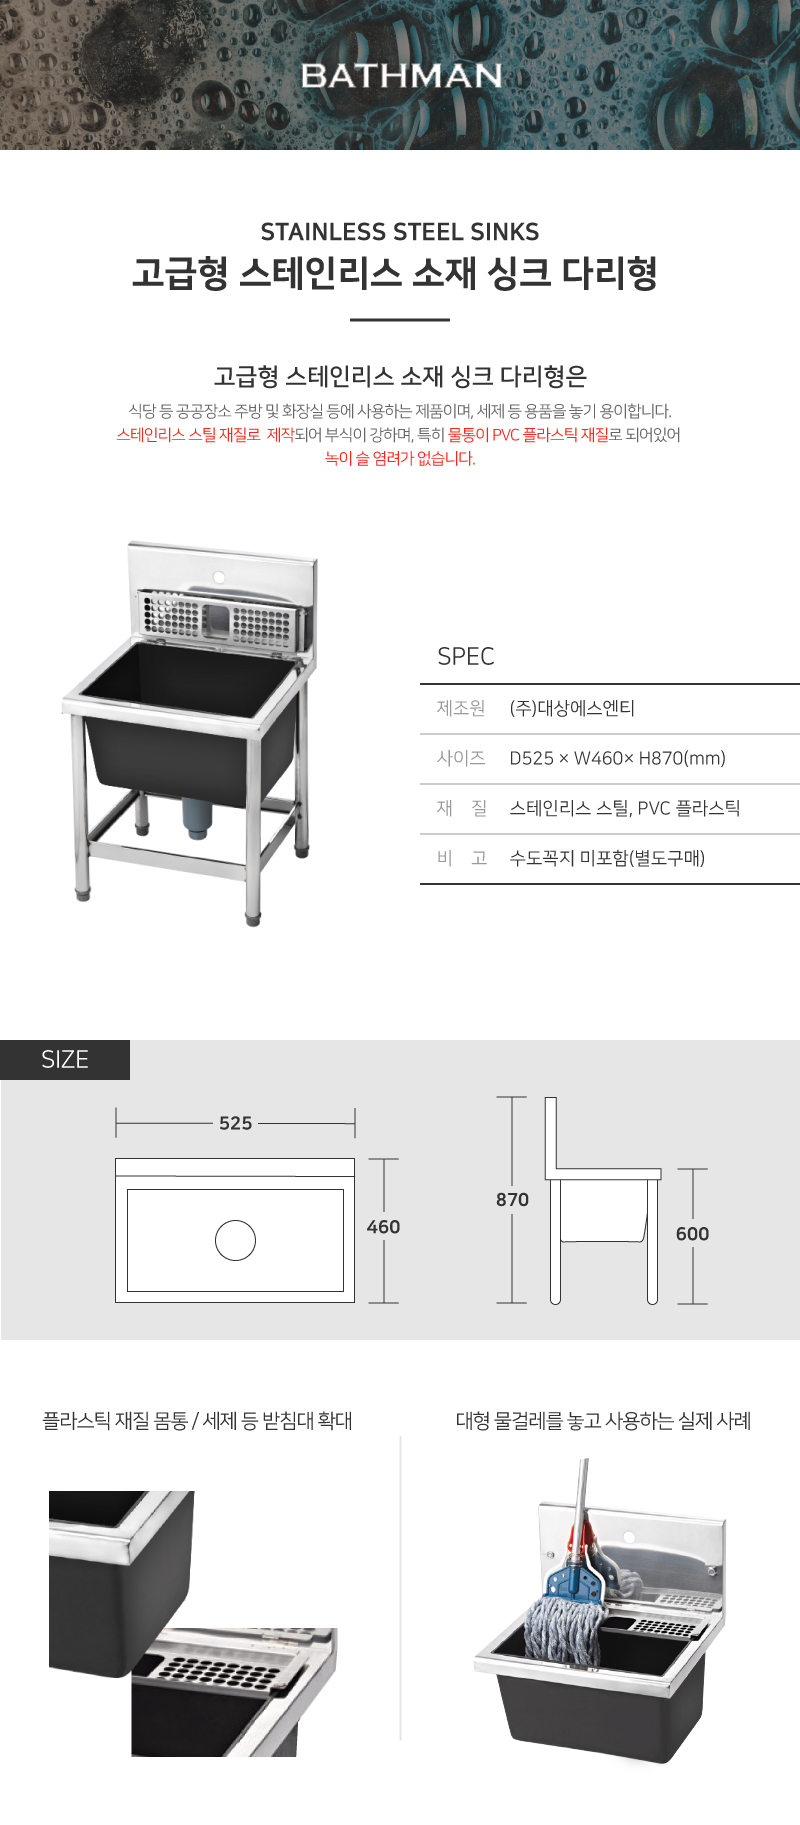 STAINLESS-STEEL-SINKS_LEG-TYPE_102909.jpg